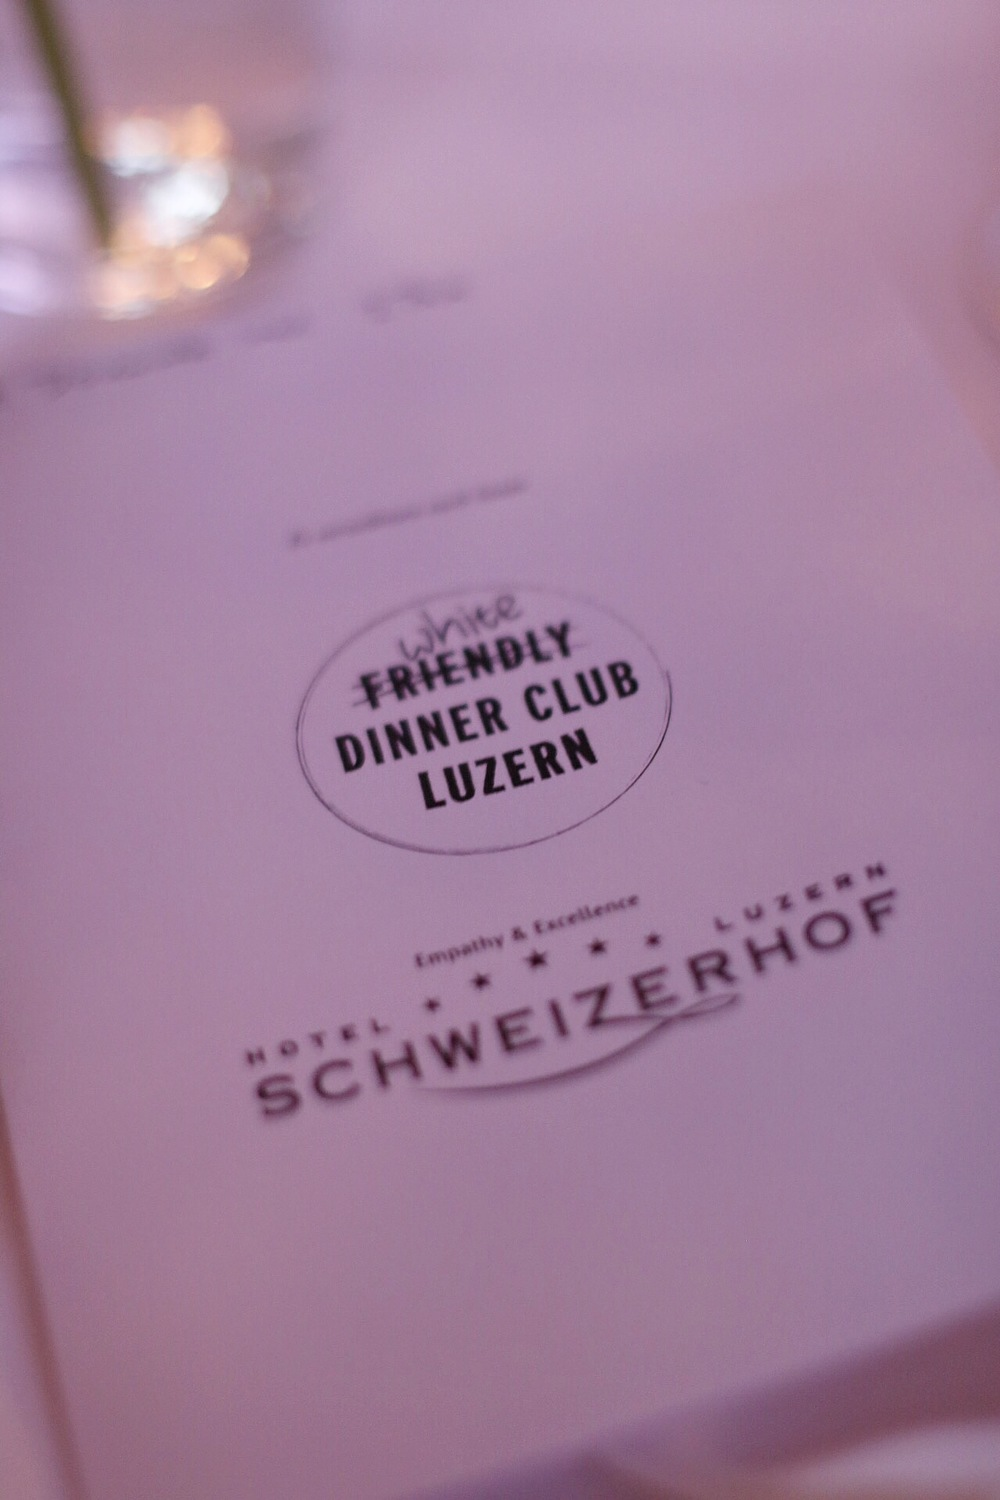 SHAREAT-white-dinner-club-luzern